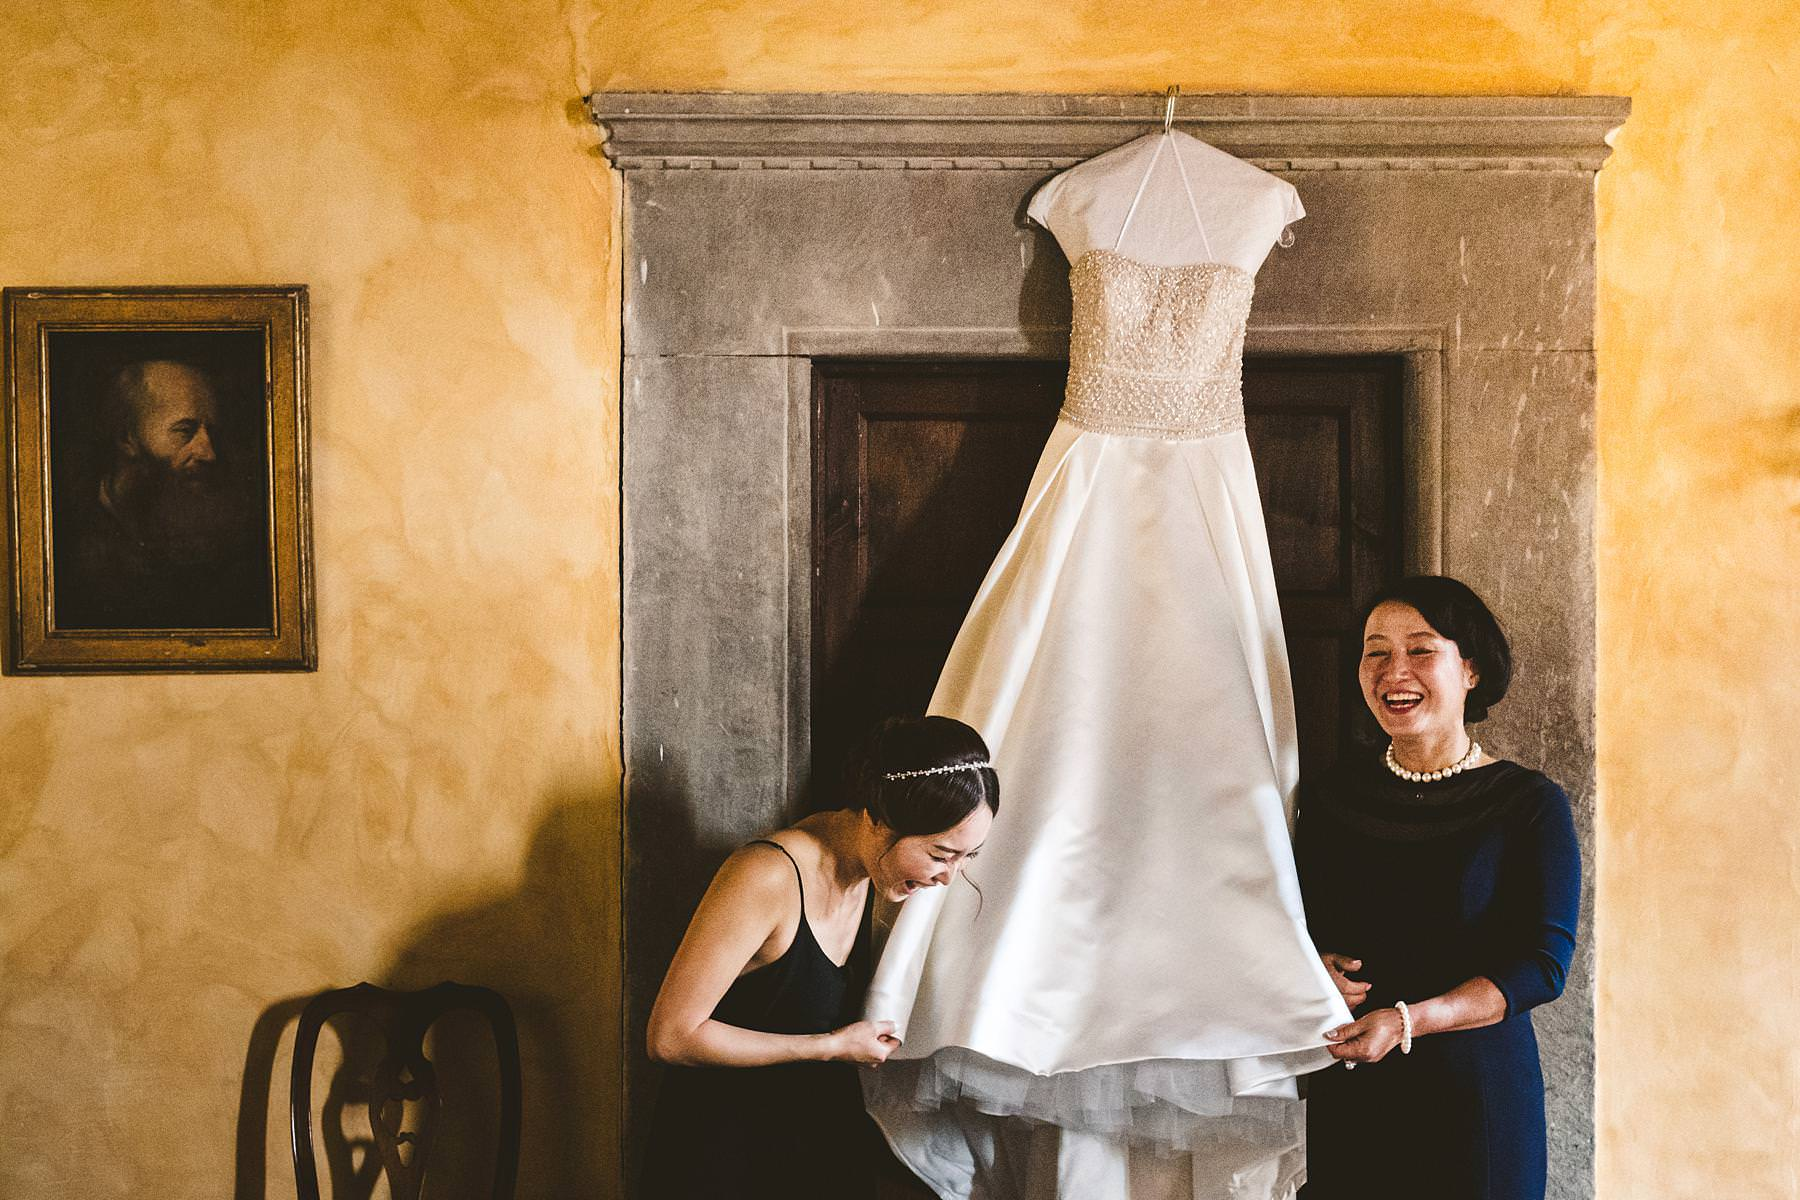 Real and genuine moment during getting ready of bride Elise at Palagio Castle venue in Chianti